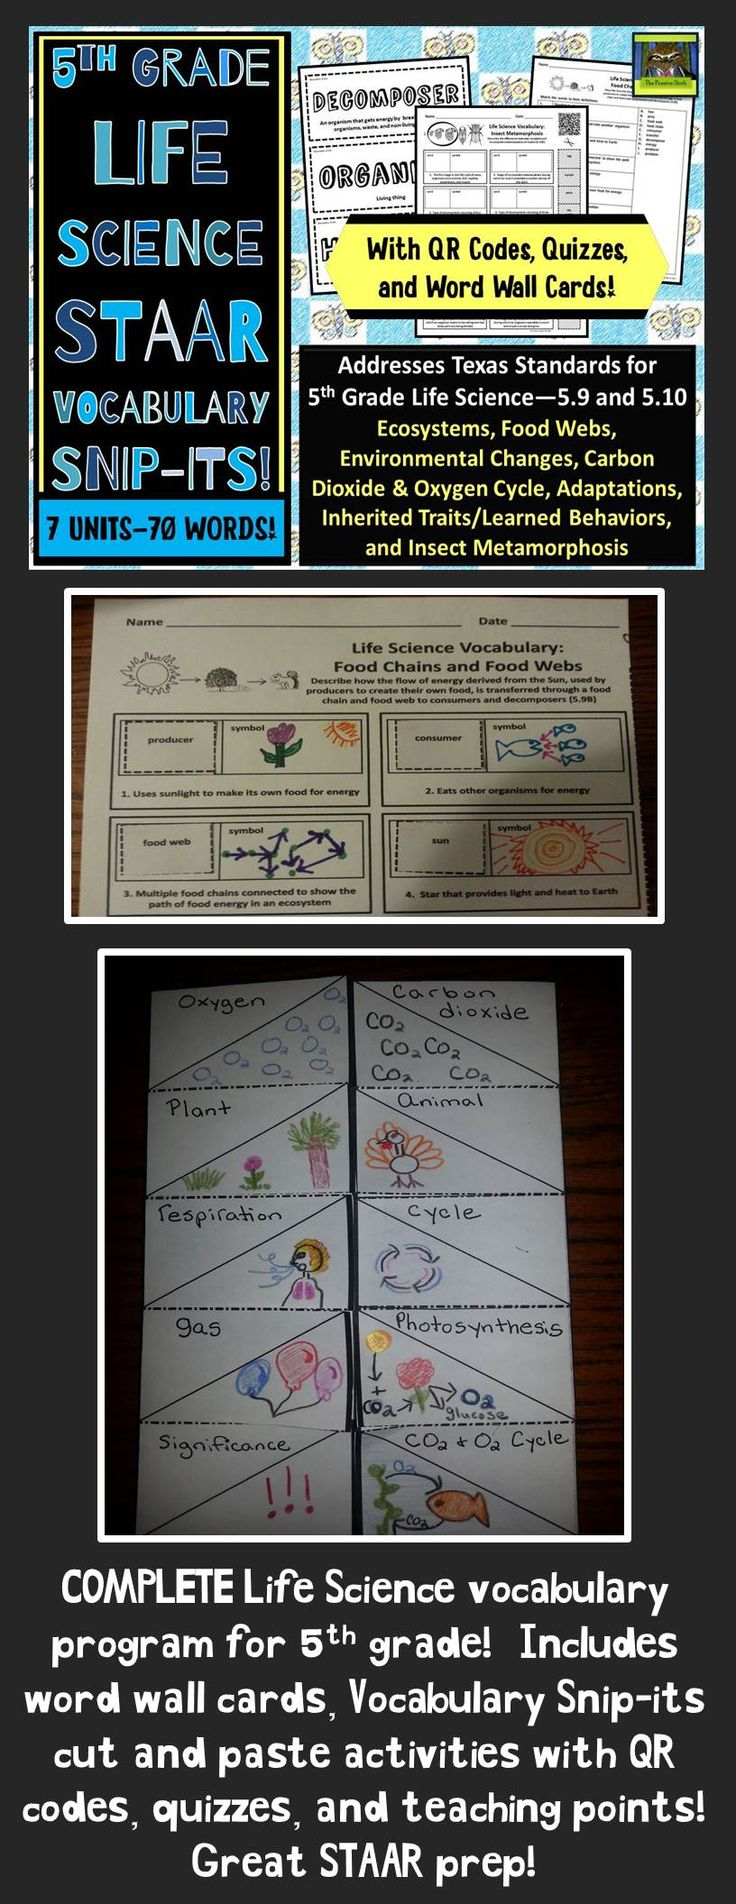 5th grade life science staar adaptations food webs carbon oxygen cycle pdf cut and paste. Black Bedroom Furniture Sets. Home Design Ideas